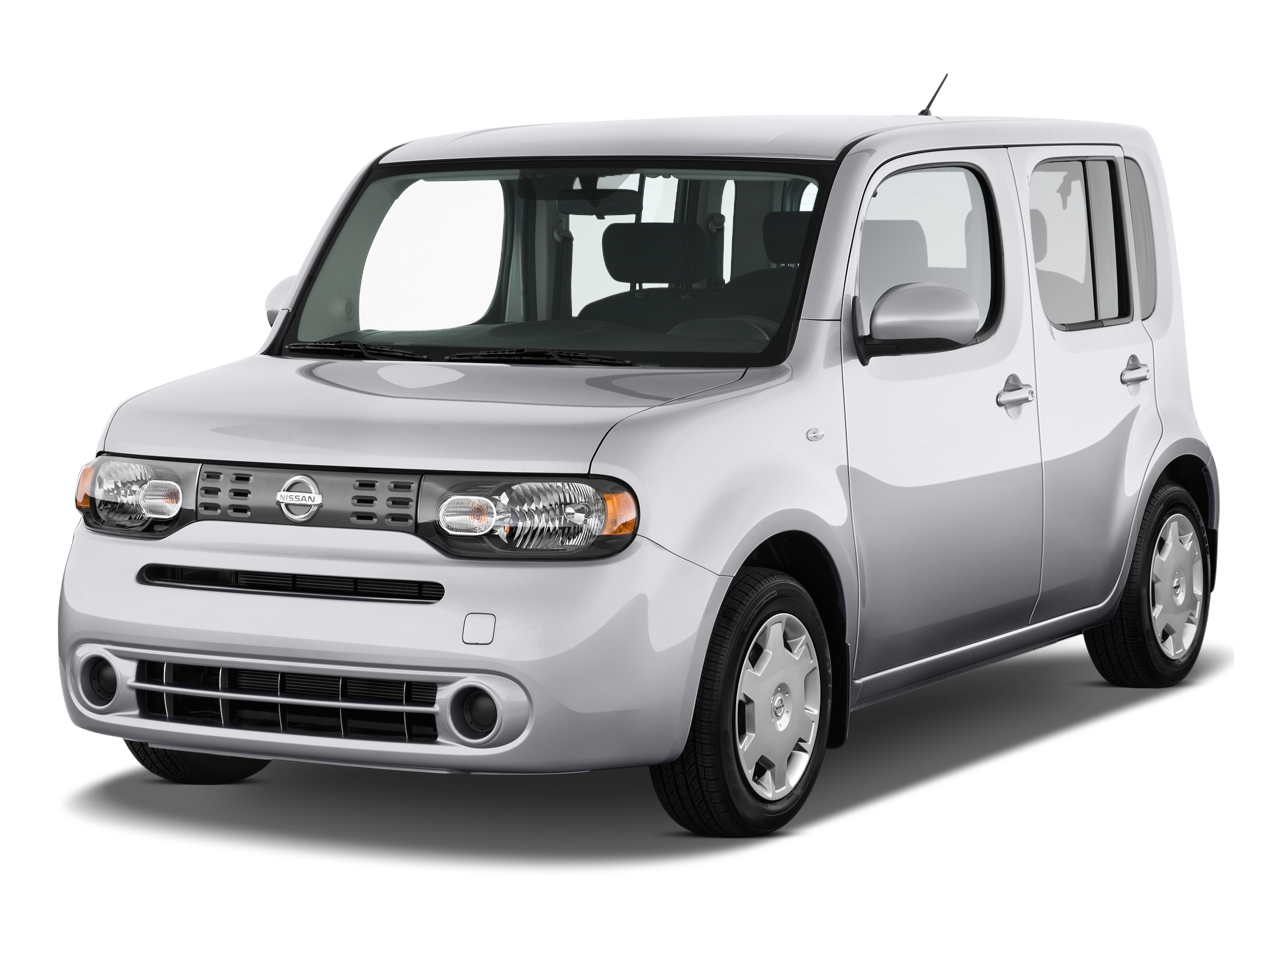 2009 nissan cube 1.8 s wagon angular front - 2009 Nissan Cube 1 8 S